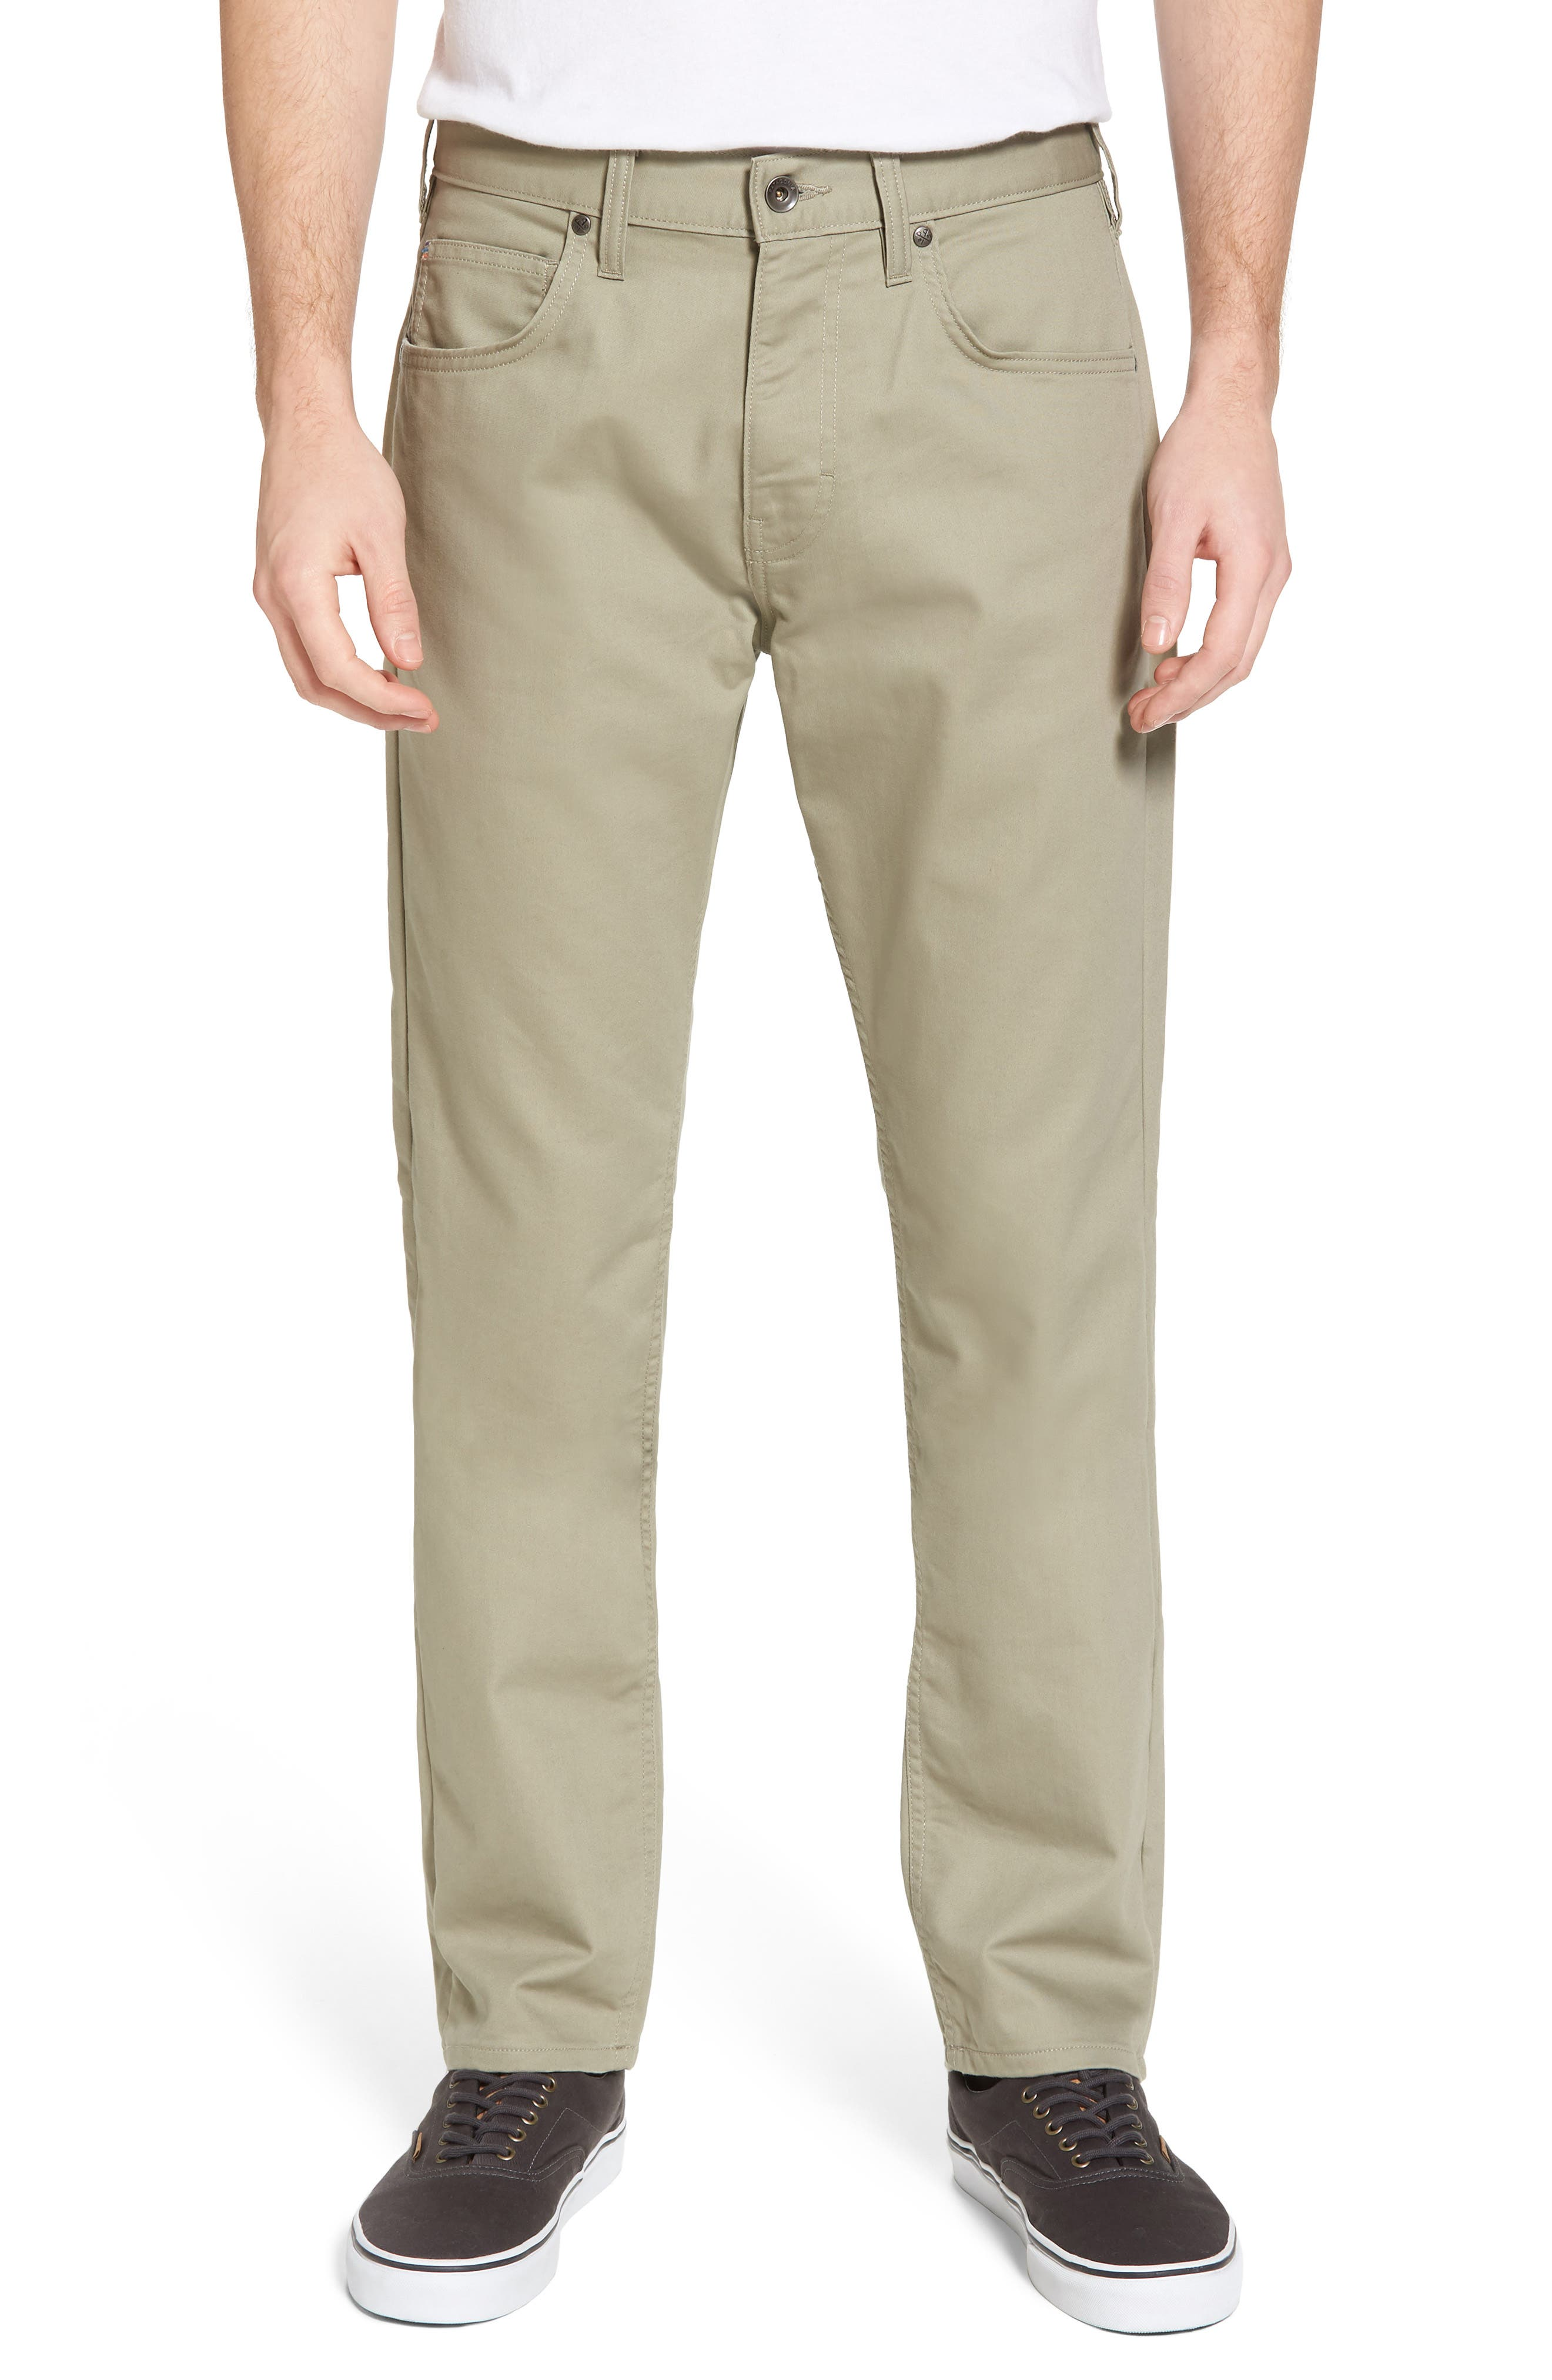 M's Performance Twill Jeans,                             Main thumbnail 1, color,                             Shale